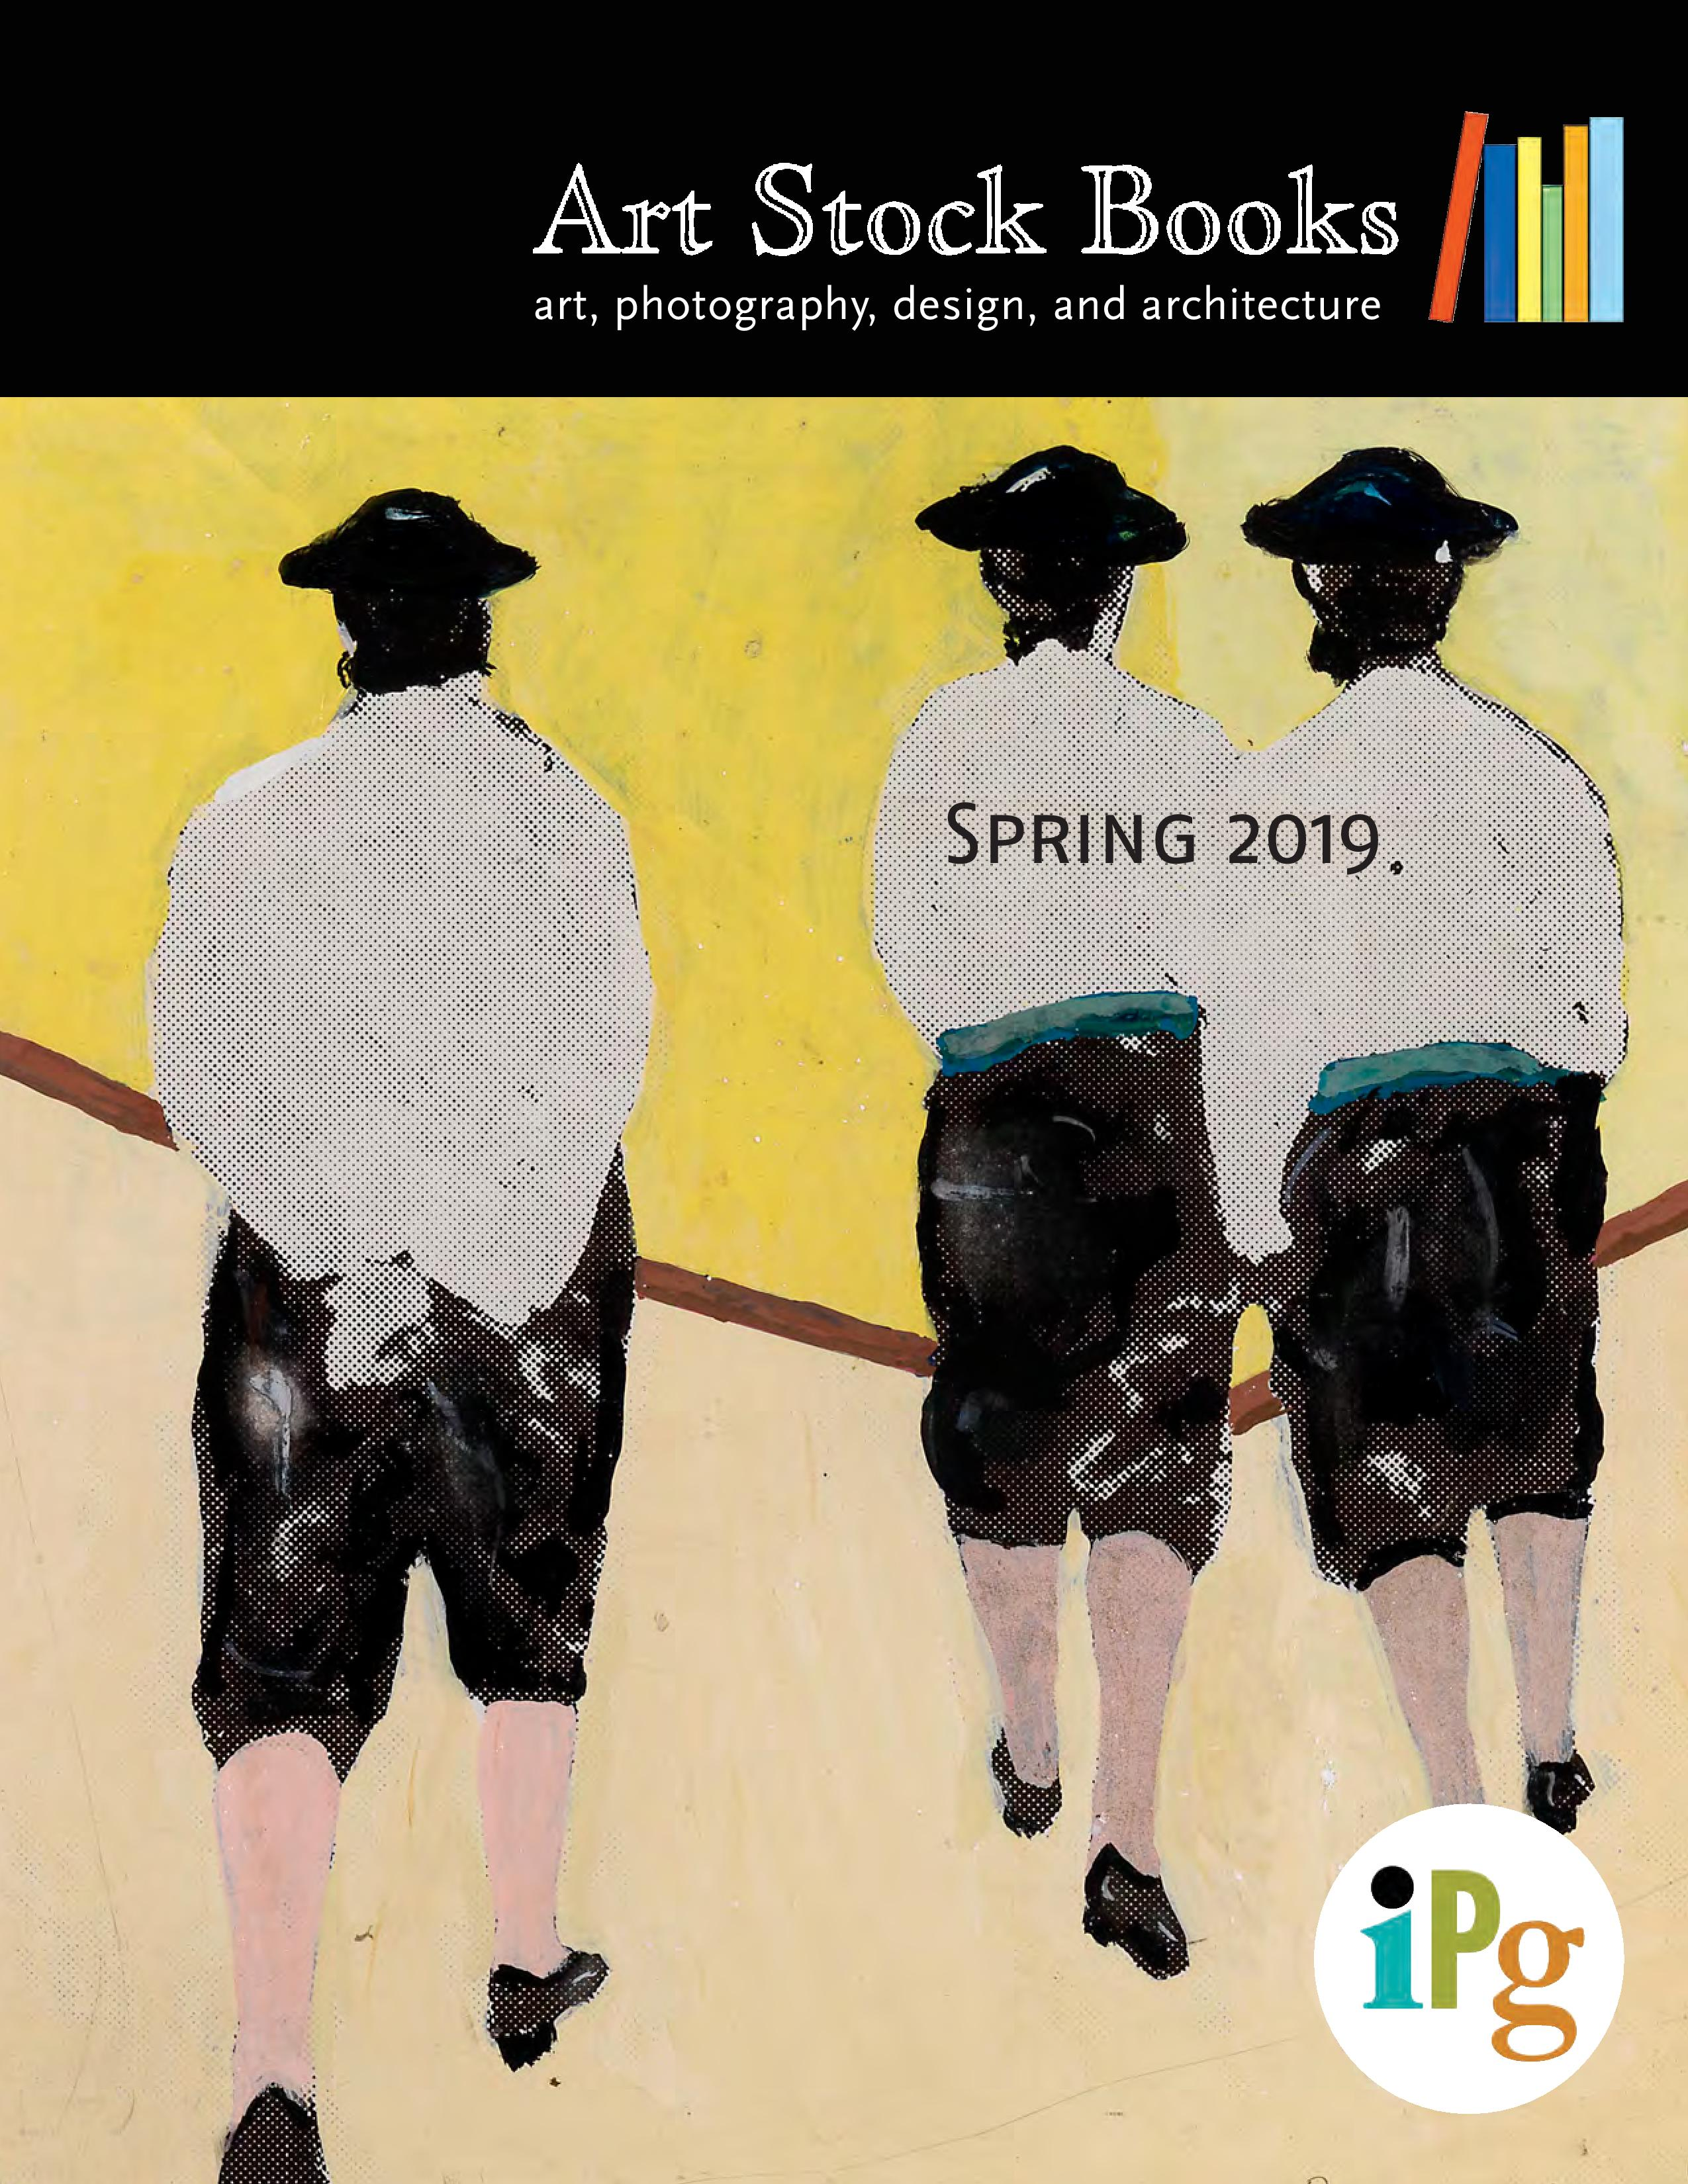 Art Stock Books Spring 2019 Catalog